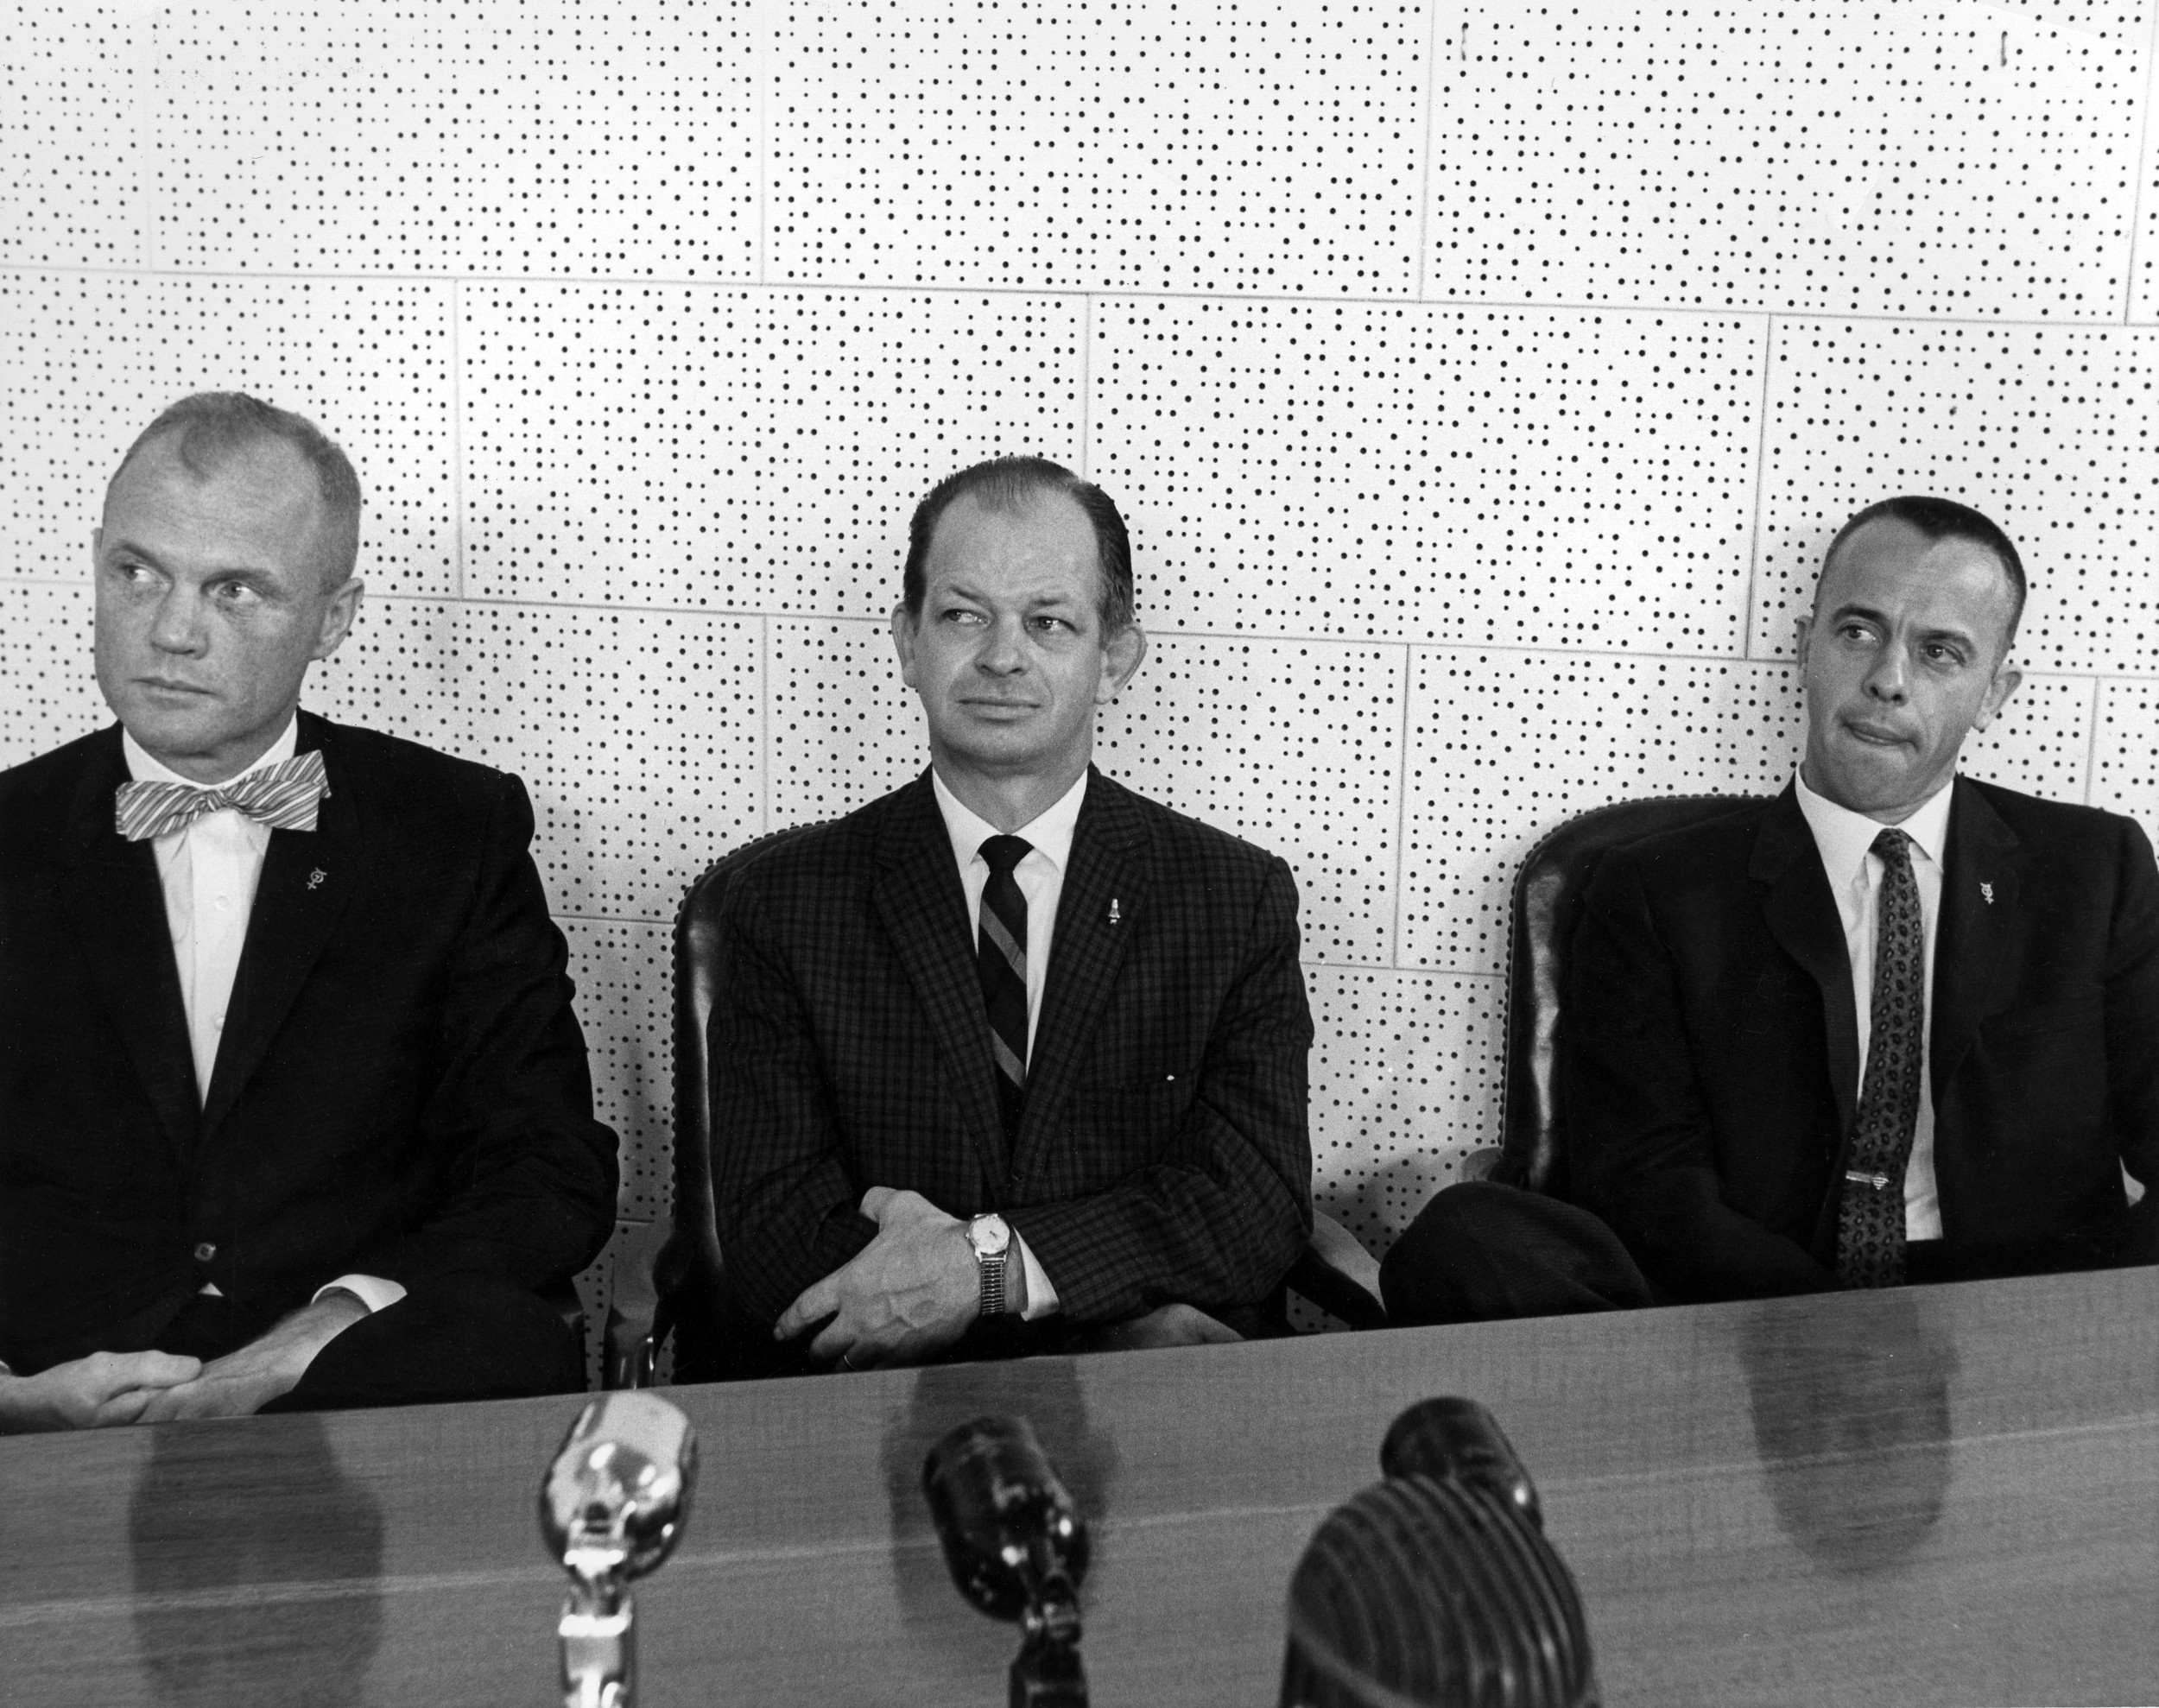 """John """"Shorty"""" Powers, the """"voice of the Astronauts,"""" sits between John Glenn and Alan Shepard during a press conference interview with the first American in space (Shepard) and the first American to orbit the Earth (Glenn)."""